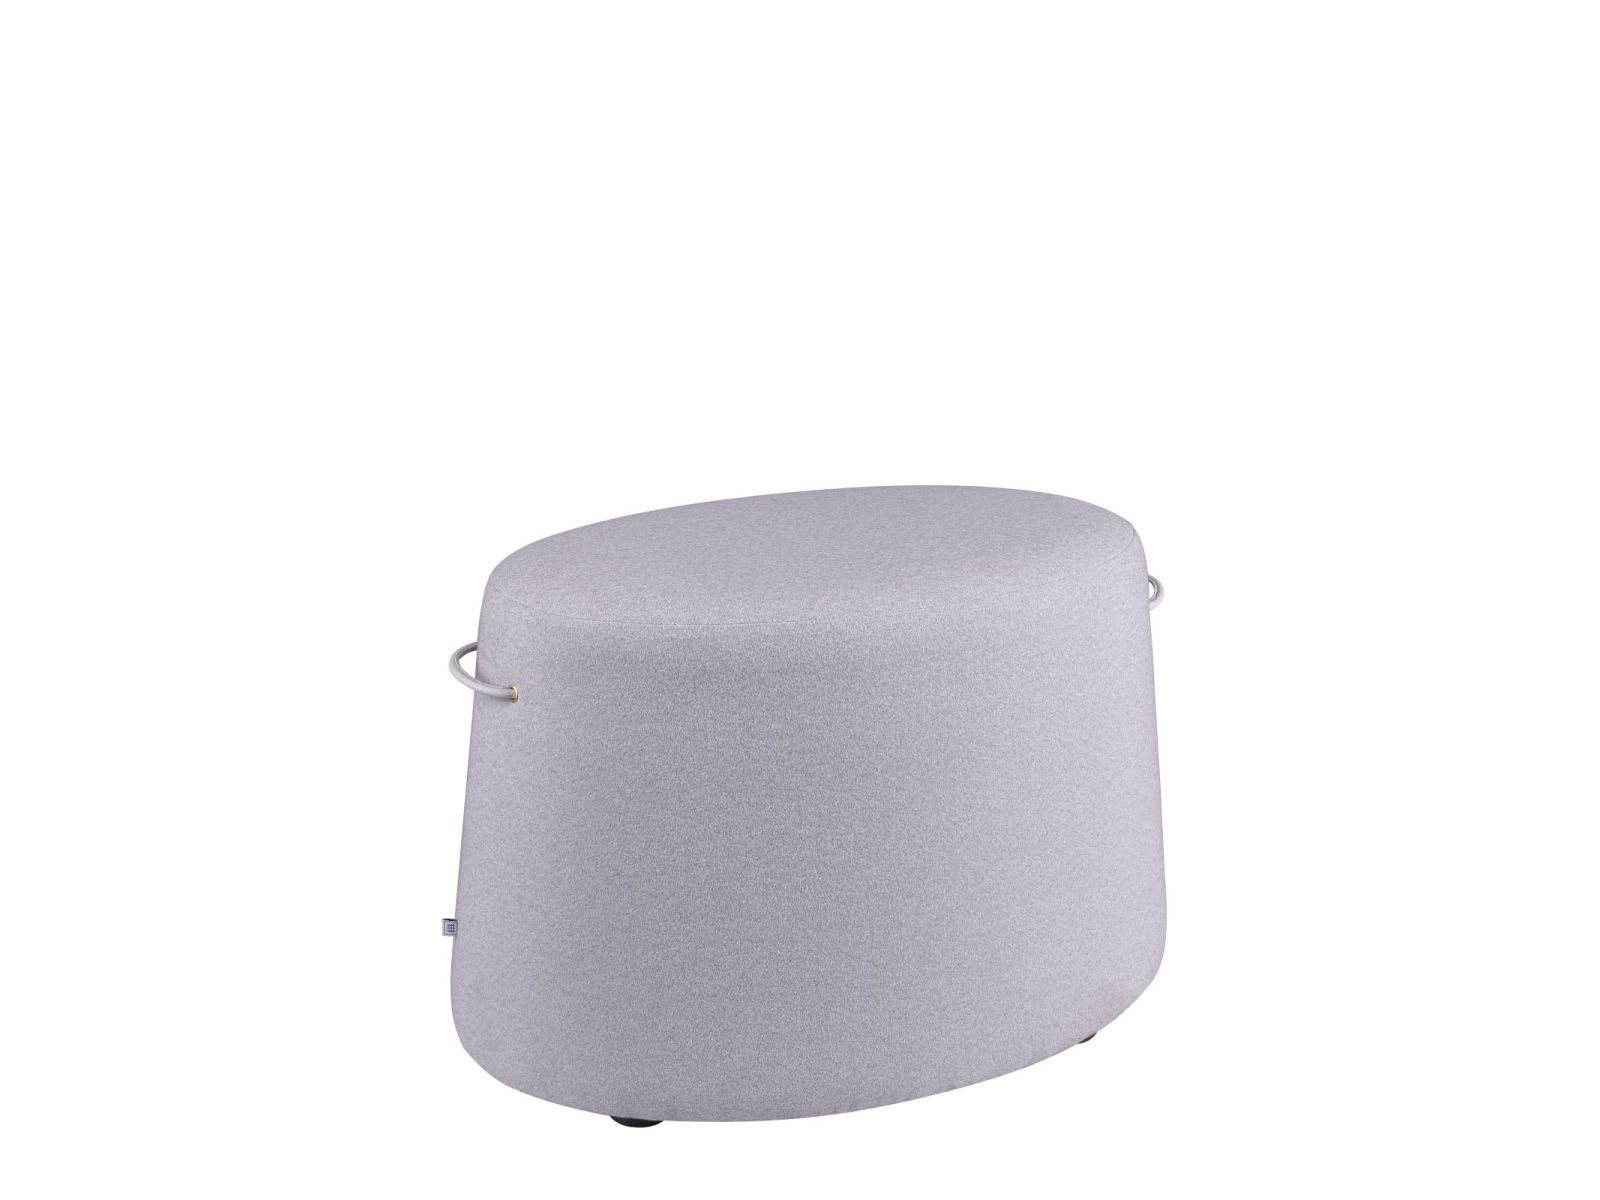 NAP Pouf in fabric or leather with handles